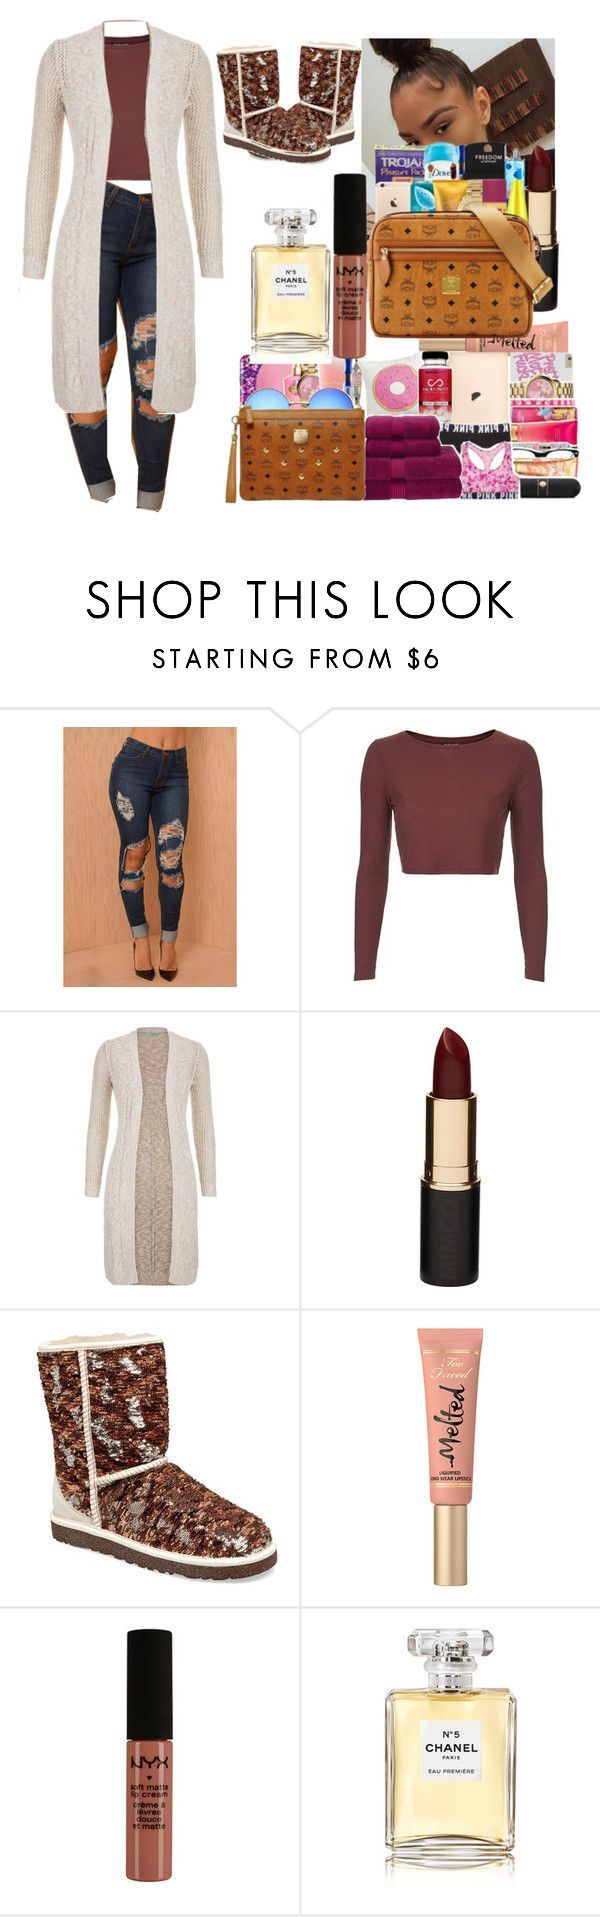 """BRIMMMBABYY"" by ohh-malaysia ❤ liked on Polyvore featuring Topshop, maurices, Mimco, UGG Australia, Too Faced Cosmetics, Chanel, women's clothing, women, female and woman"